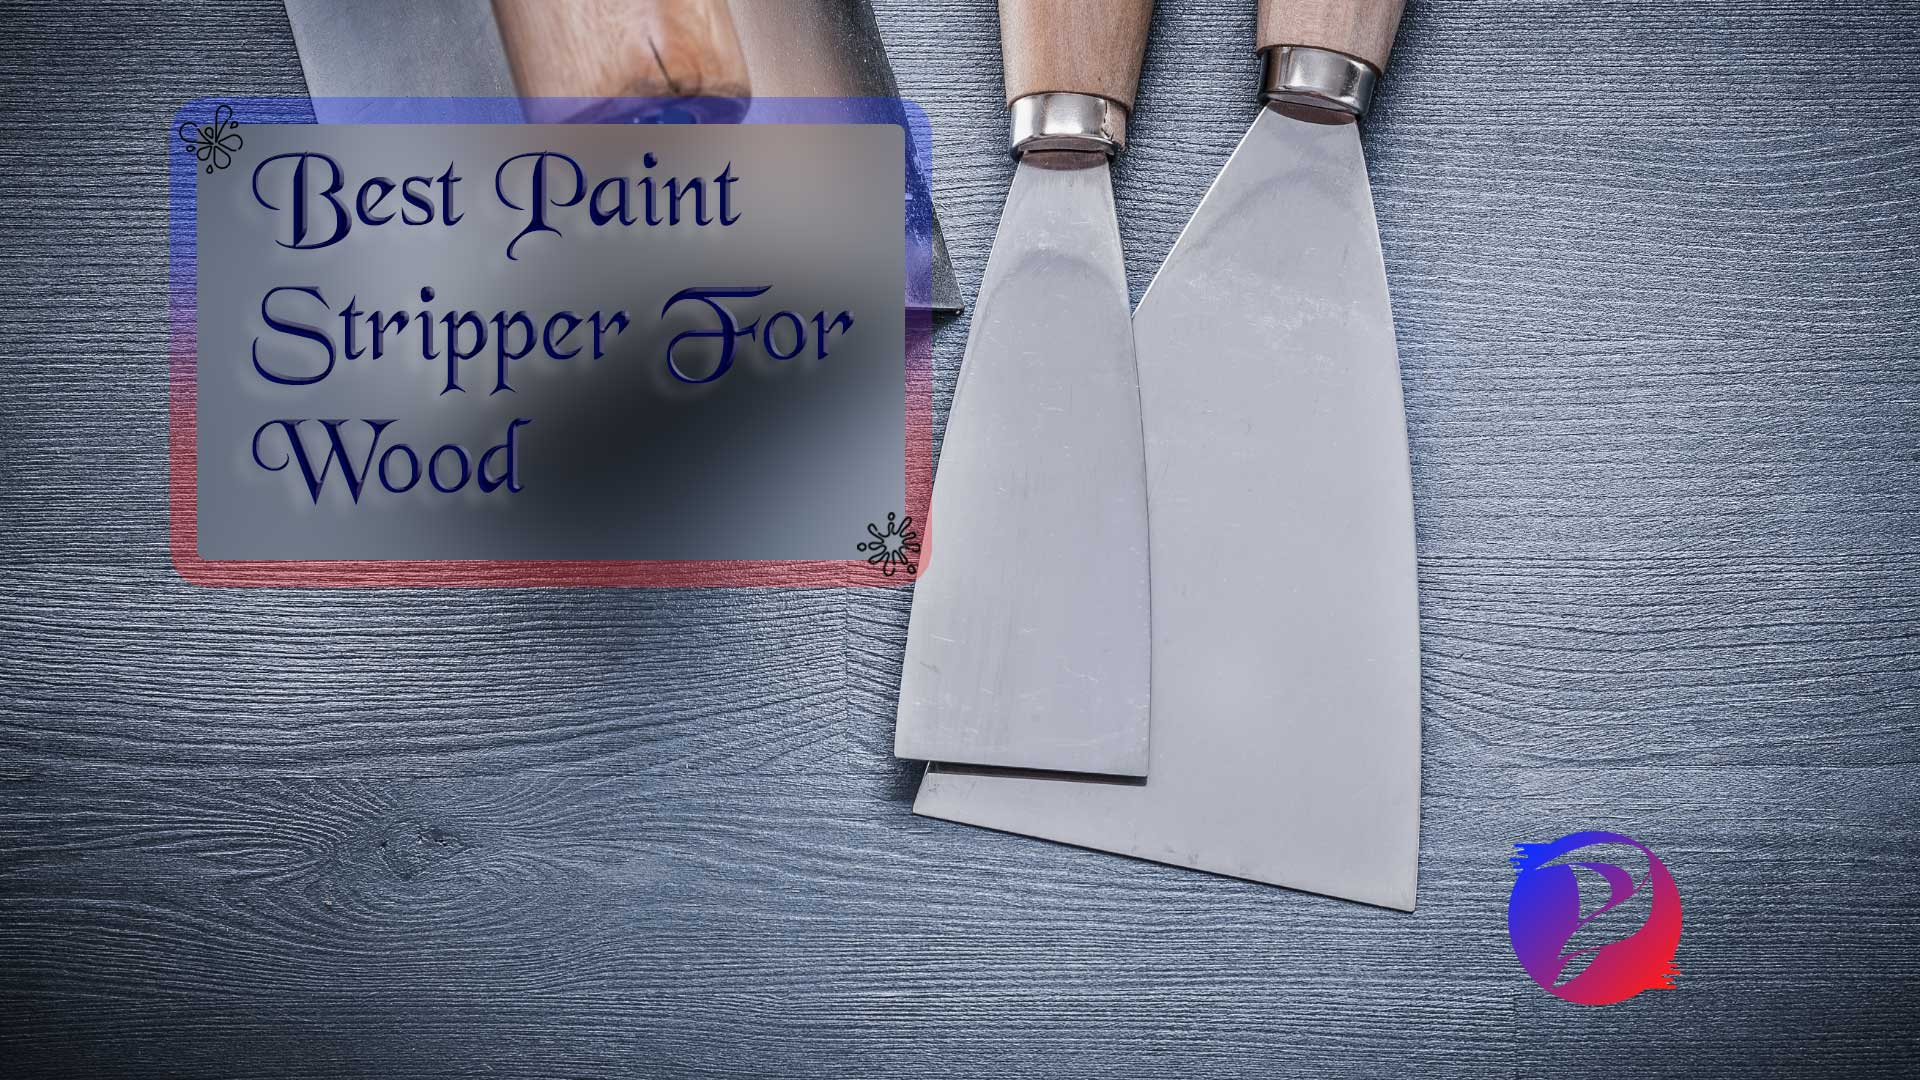 12 Best Paint Strippers For Wood